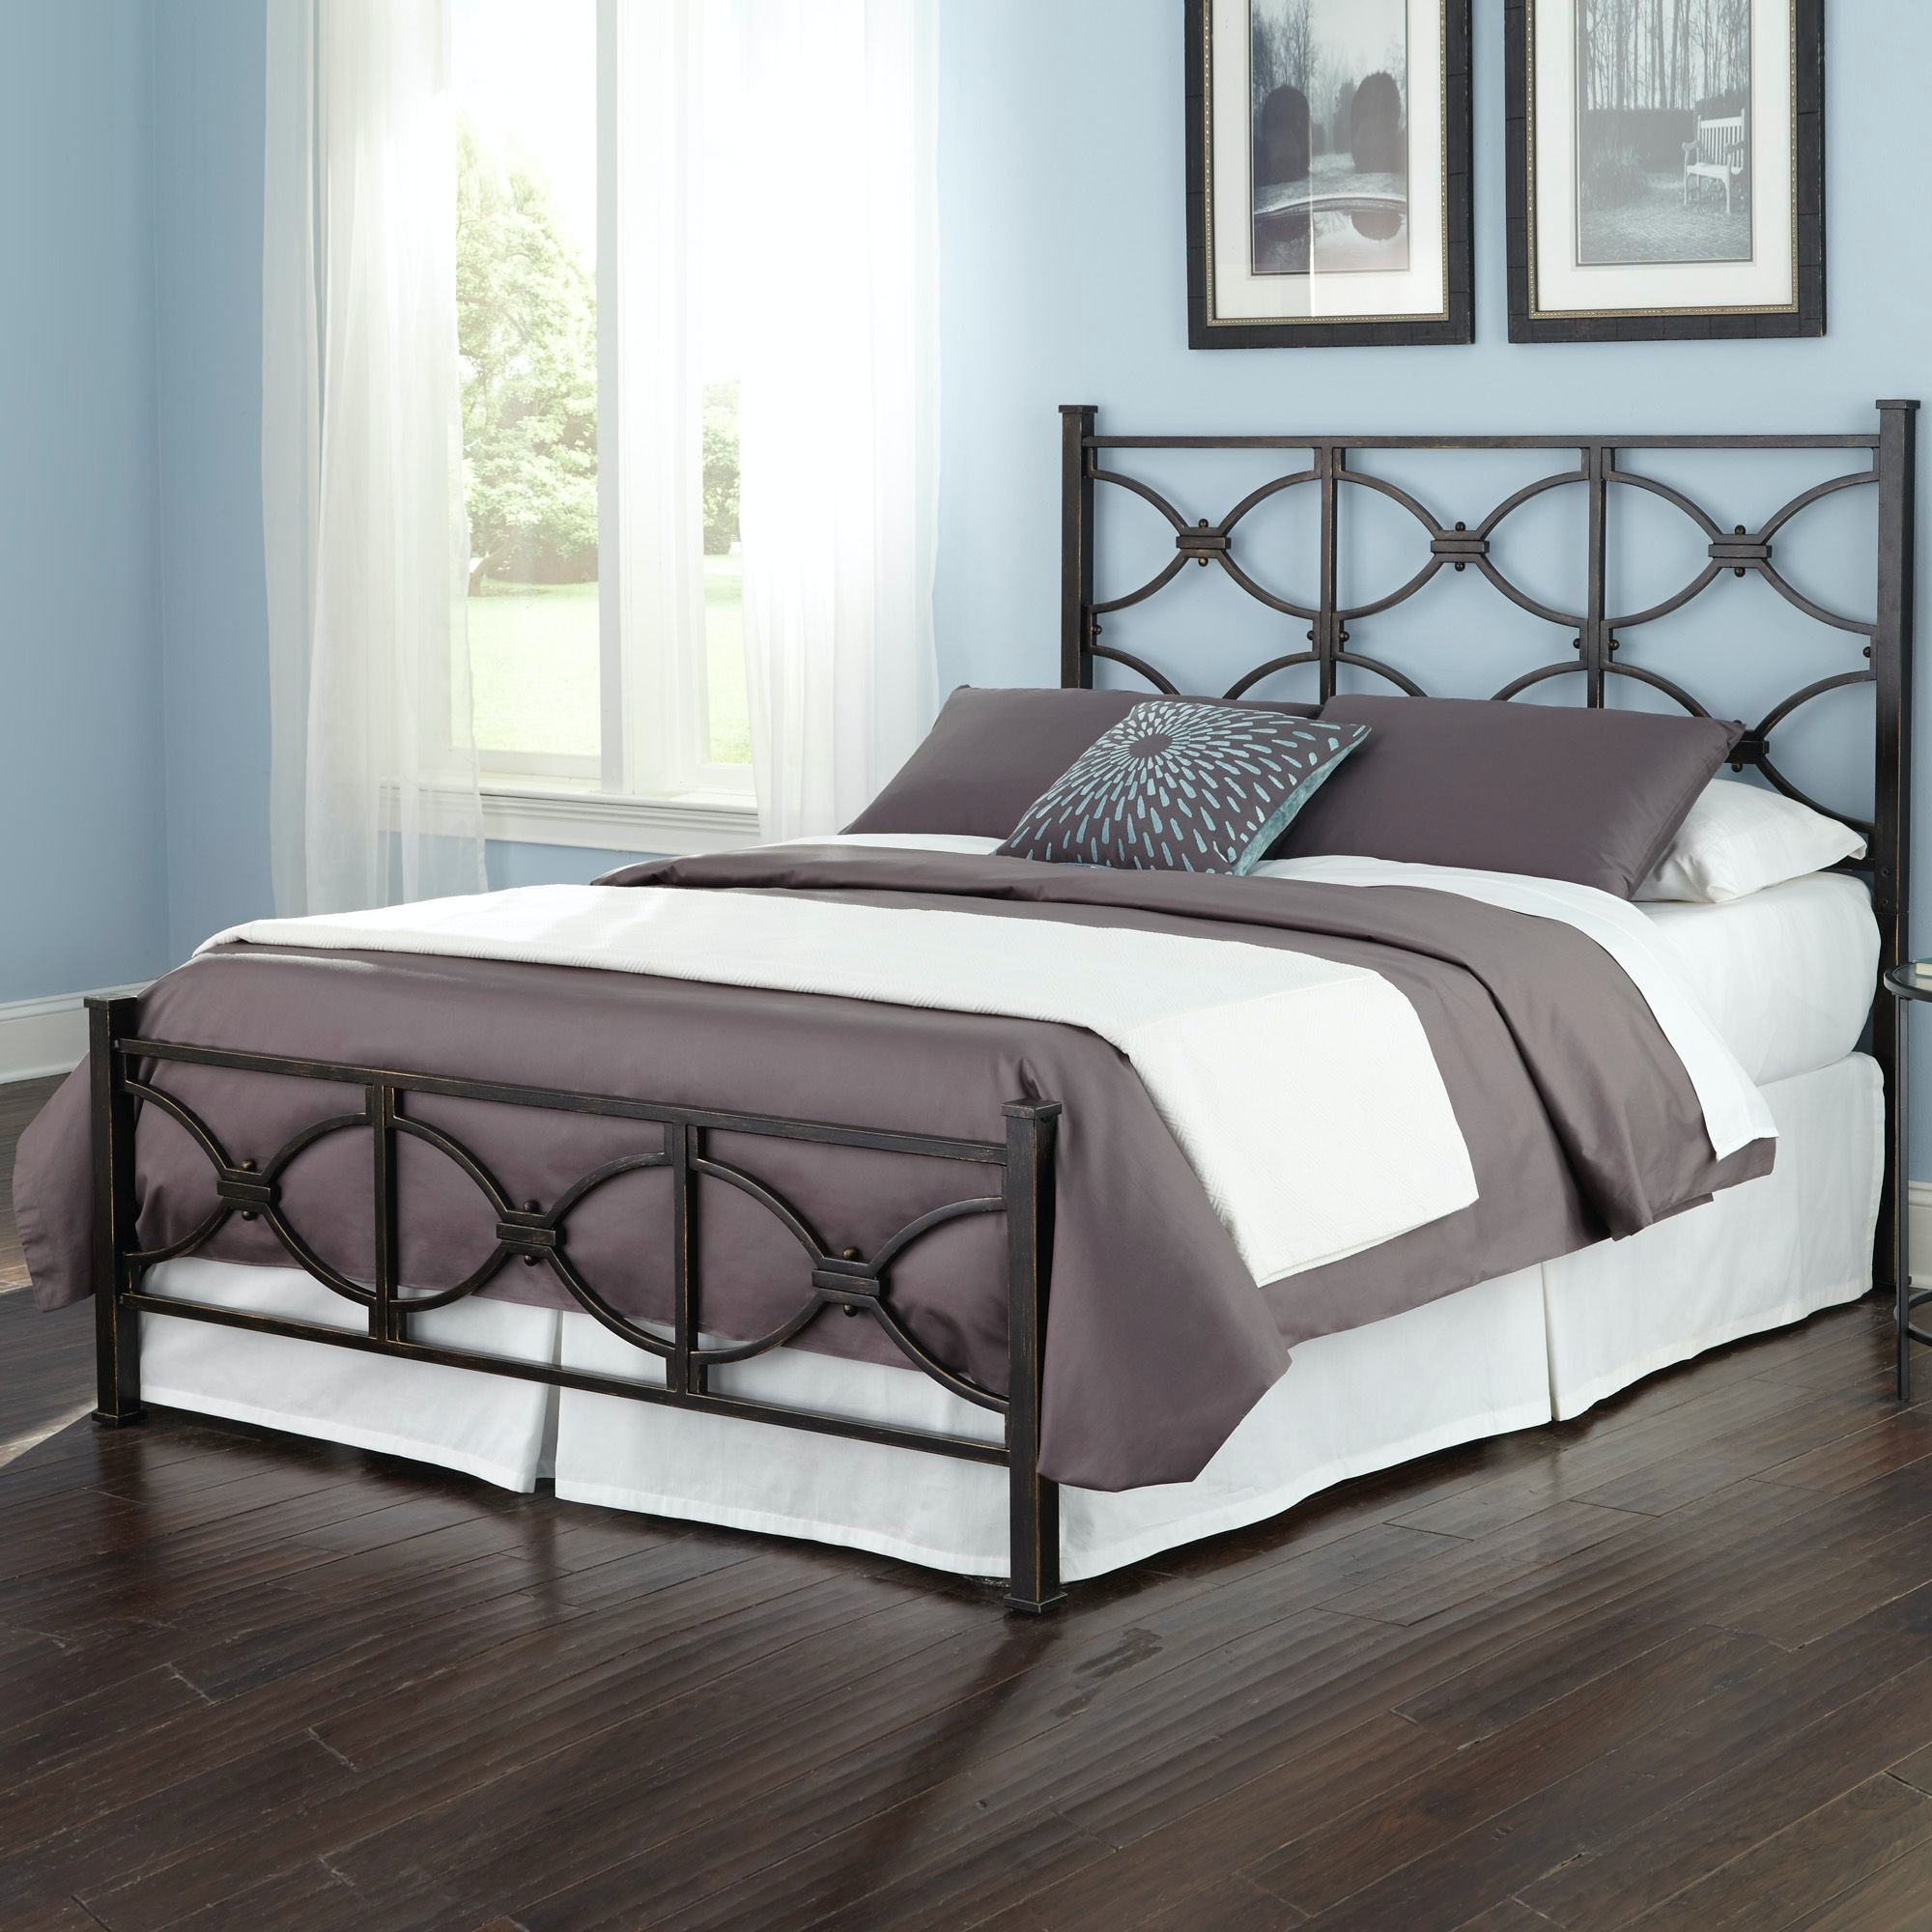 King Bed With Posts Fashion Bed Group Bedroom Marlo Bed With Metal Duo Panels And